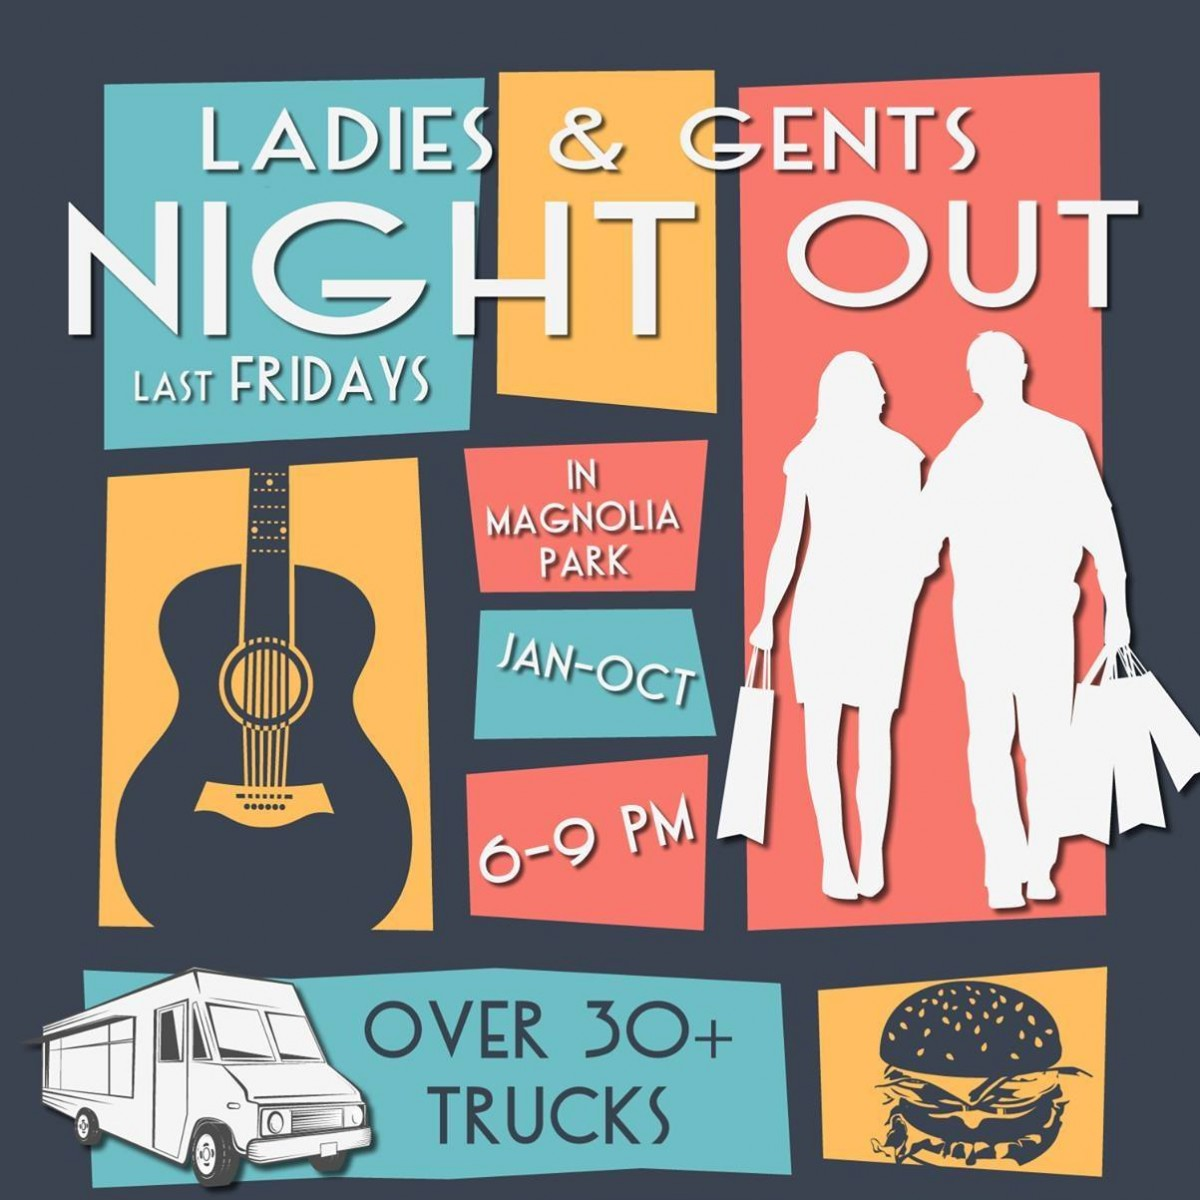 Ladies & Gents Night Out @ Magnolia Park Burbank